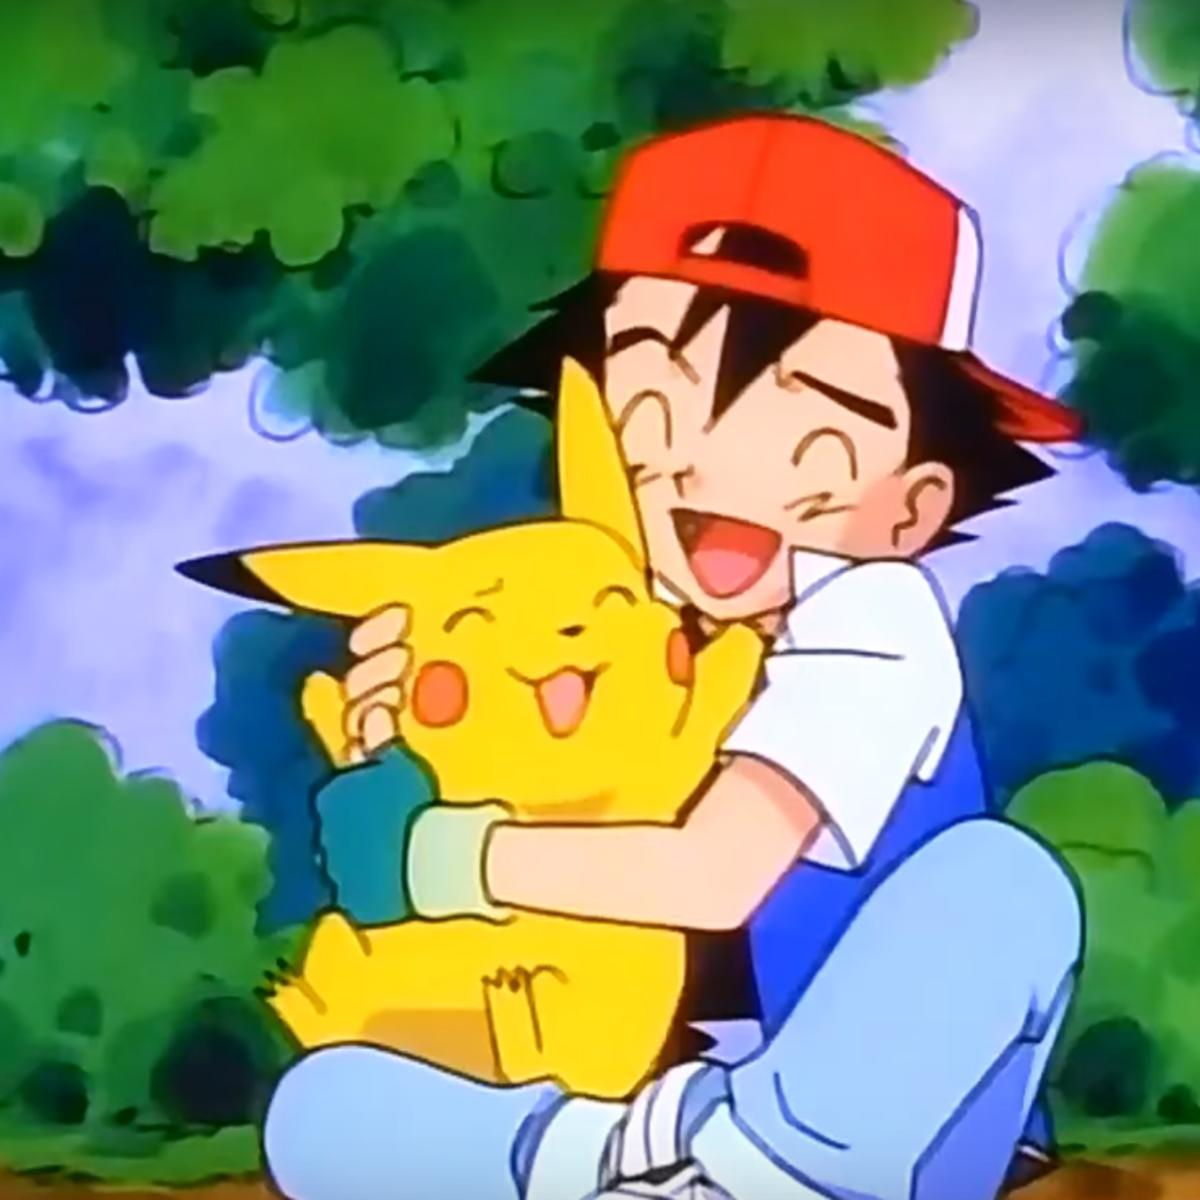 7 pokémon anime side characters were still concerned about